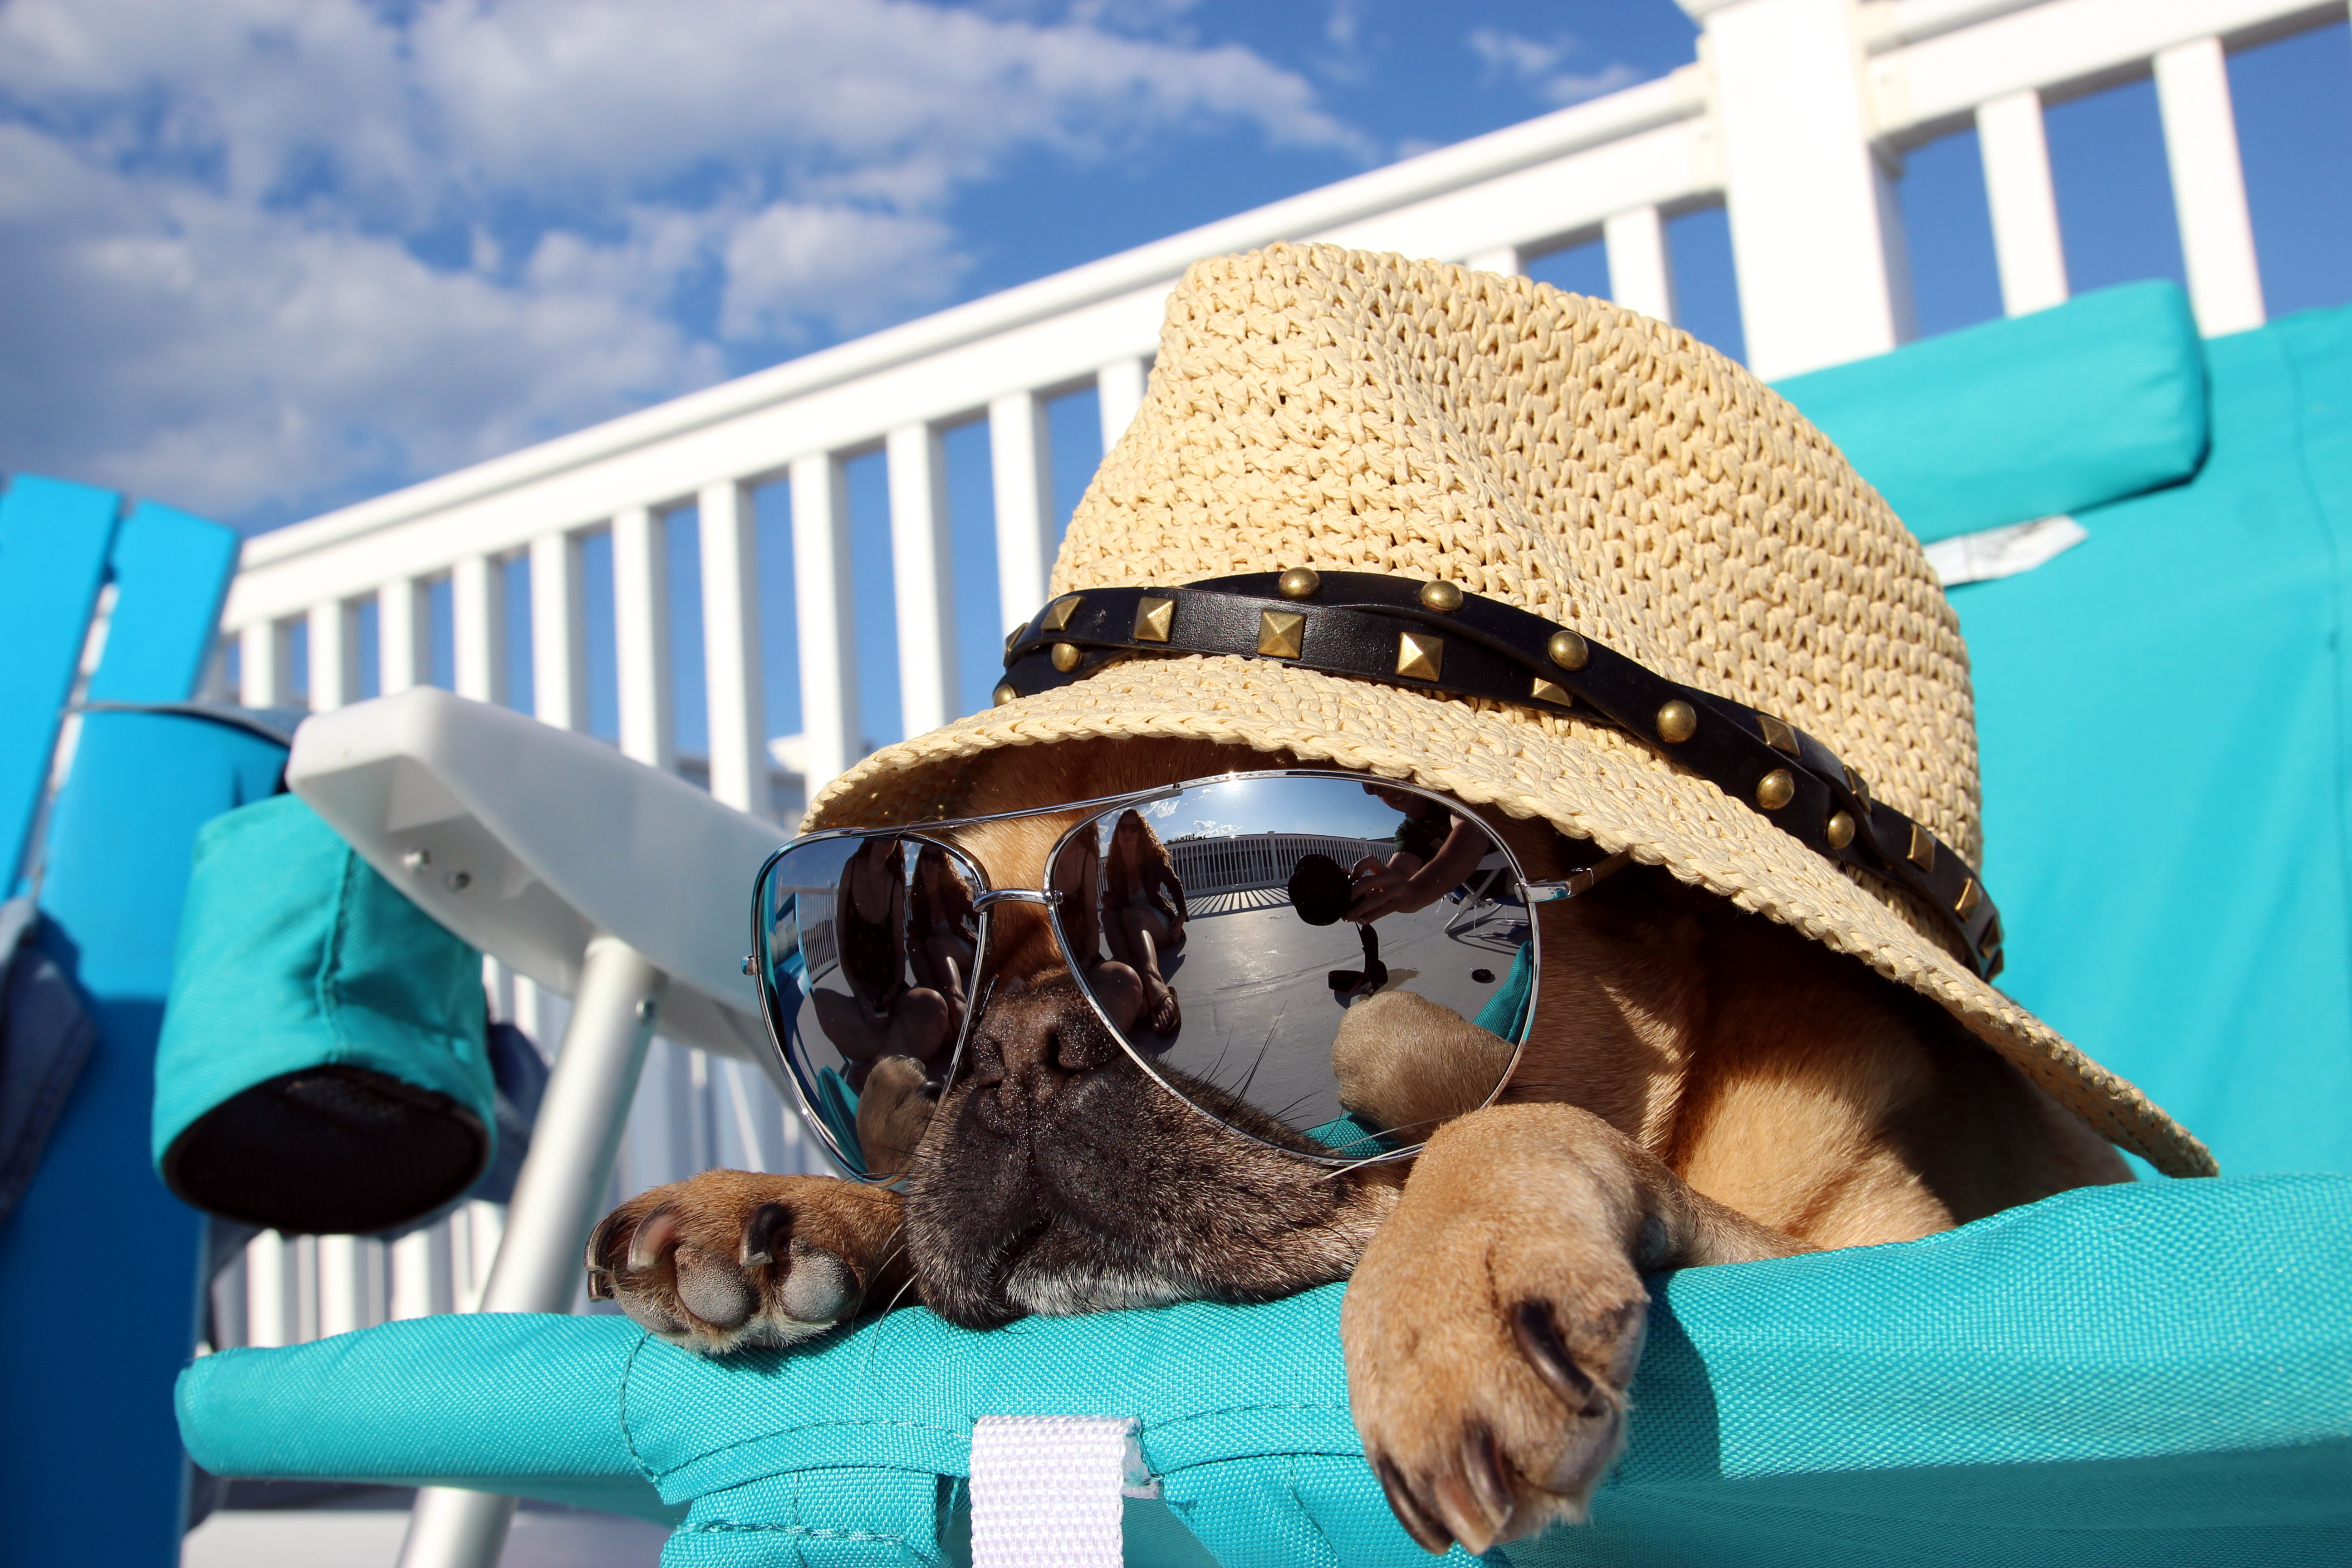 Image: Dog, hat, glasses, reflection, lies, sunbed, vacation, sky, clouds